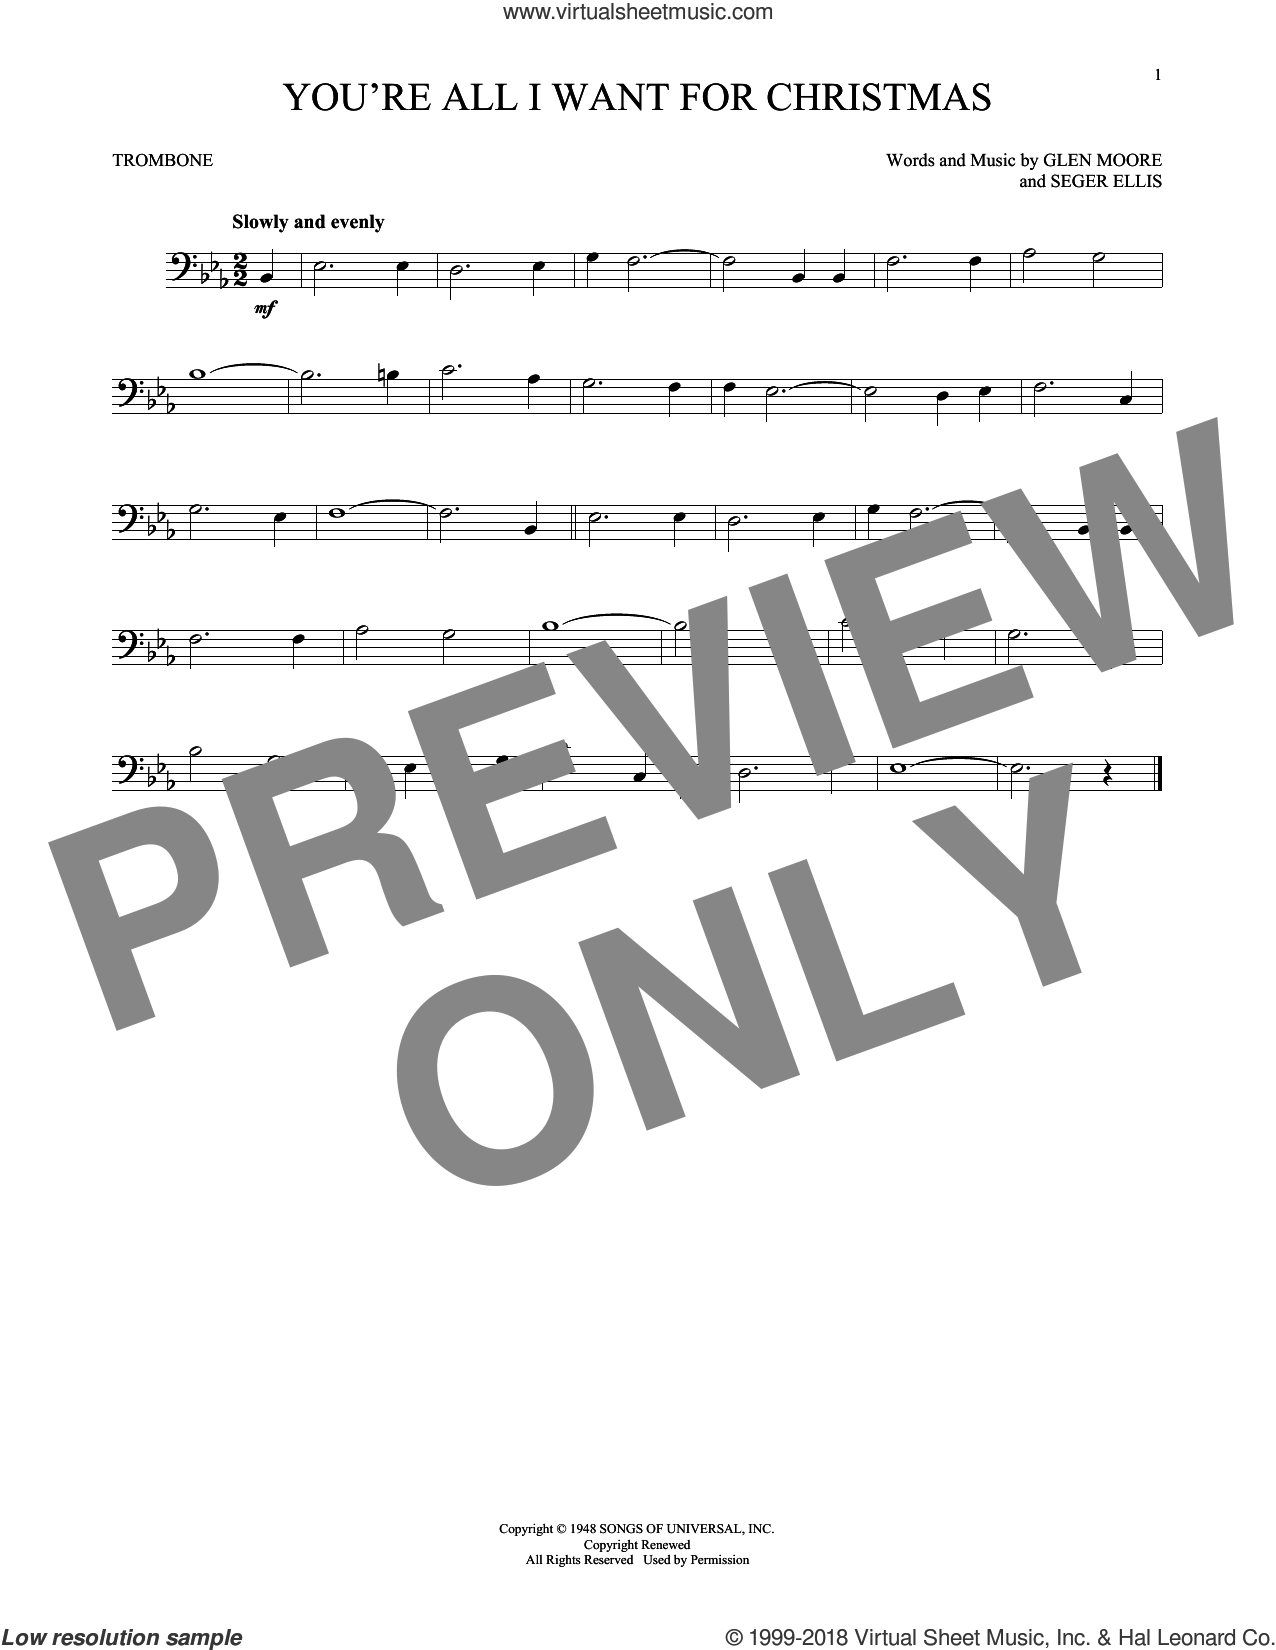 You're All I Want For Christmas sheet music for trombone solo by Glen Moore, Frank Gallagher, Glen Moore & Seger Ellis and Seger Ellis, intermediate. Score Image Preview.